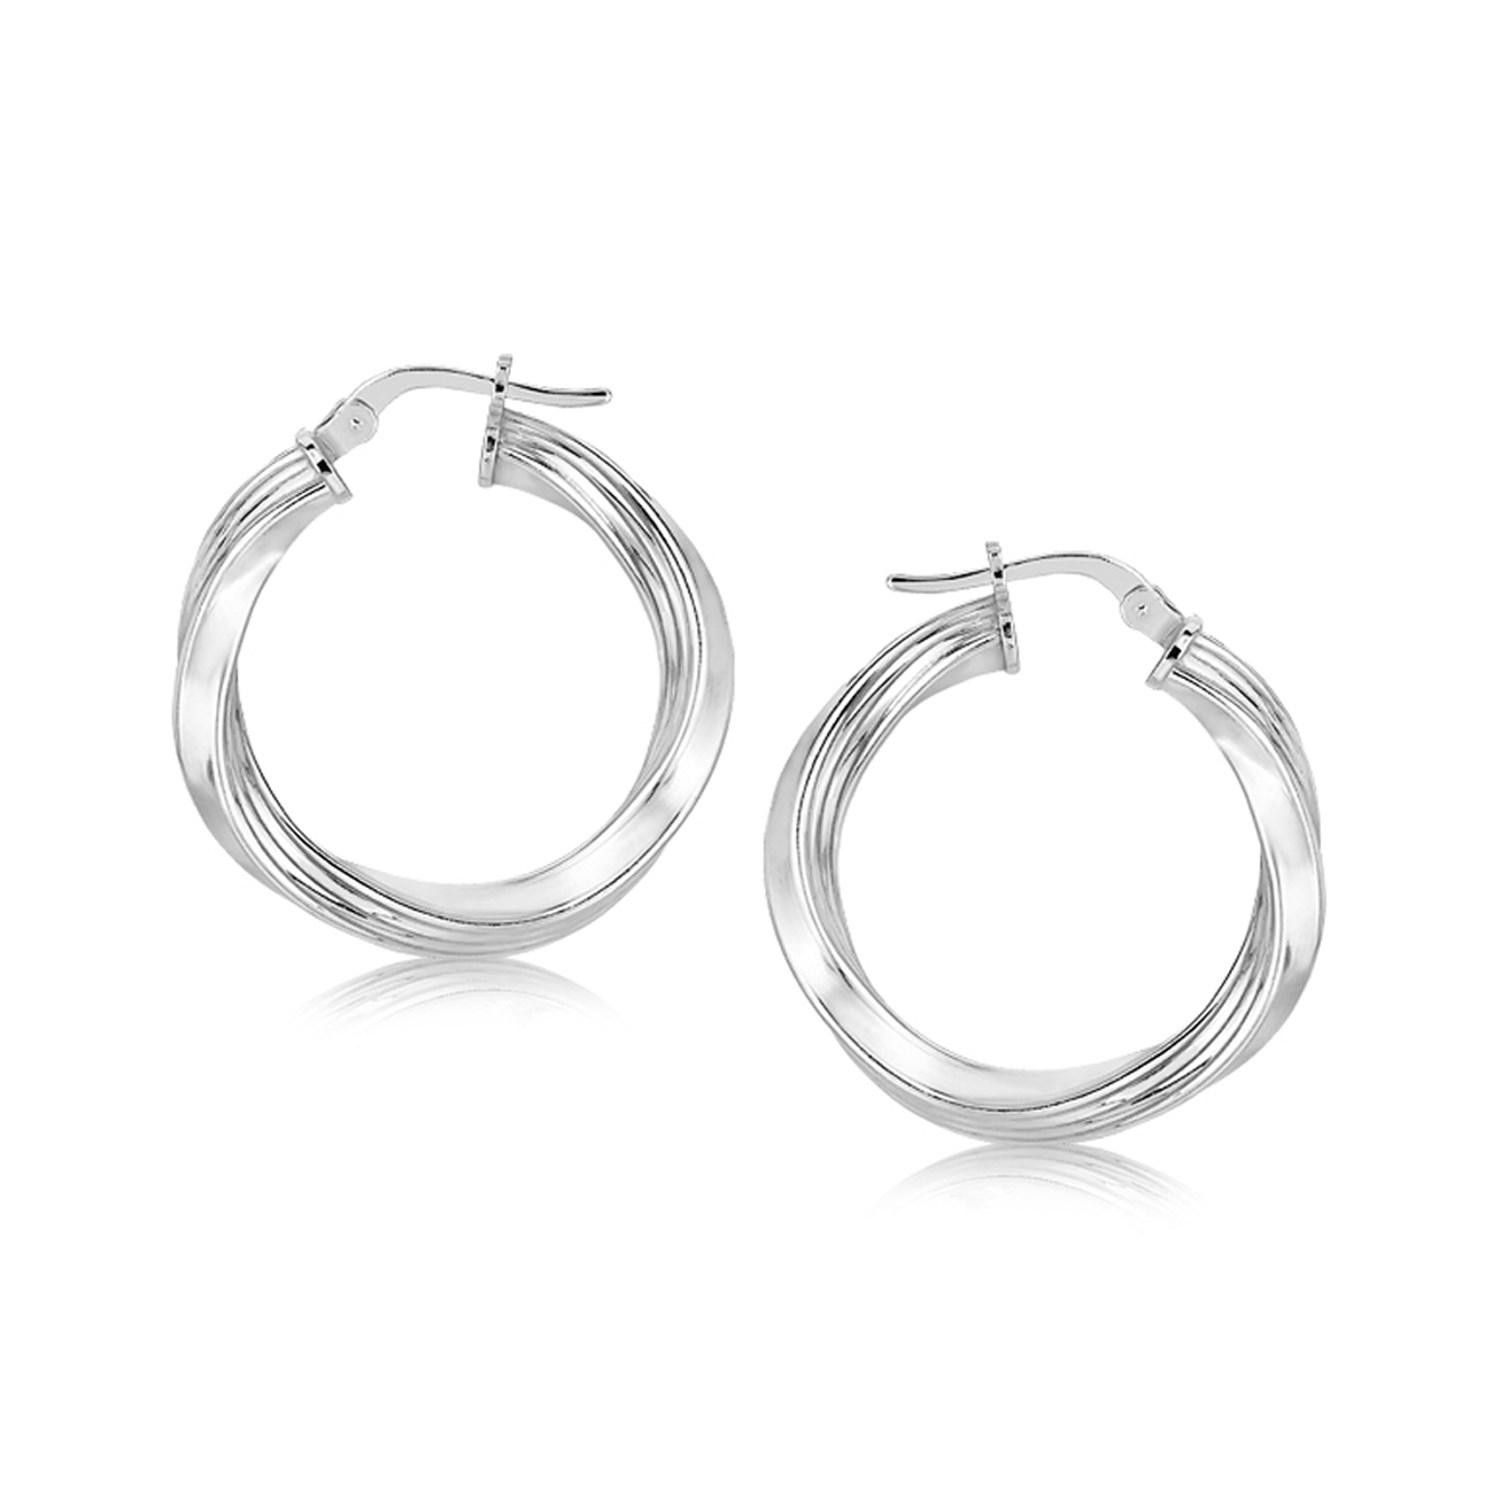 caymancode hoop jewelry back for silver sterling bling small men snap earrings